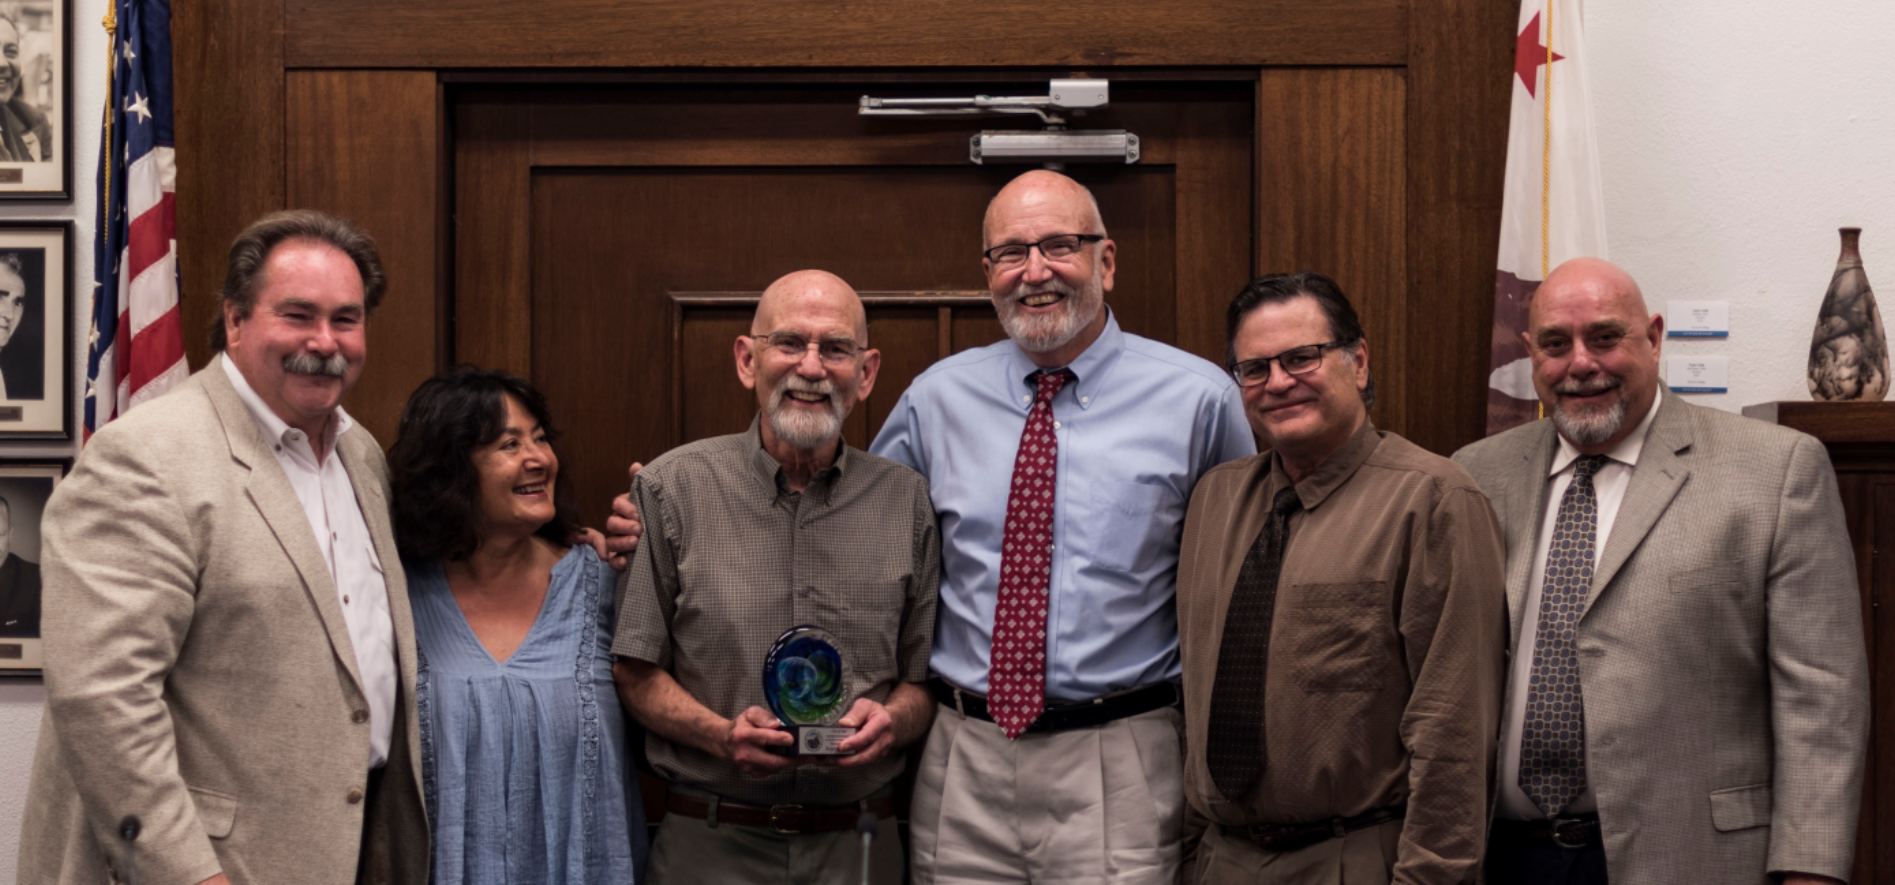 Roger Conrad receives Ojai Arts Commission Lifetime Achievement Award from the mayor and city councilpersons at the Council's May meeting.  From left, Councilpersons Randy Haney, Suza Francina, Mayor Johnny Johnston, William Weirick and Paul Blatz.